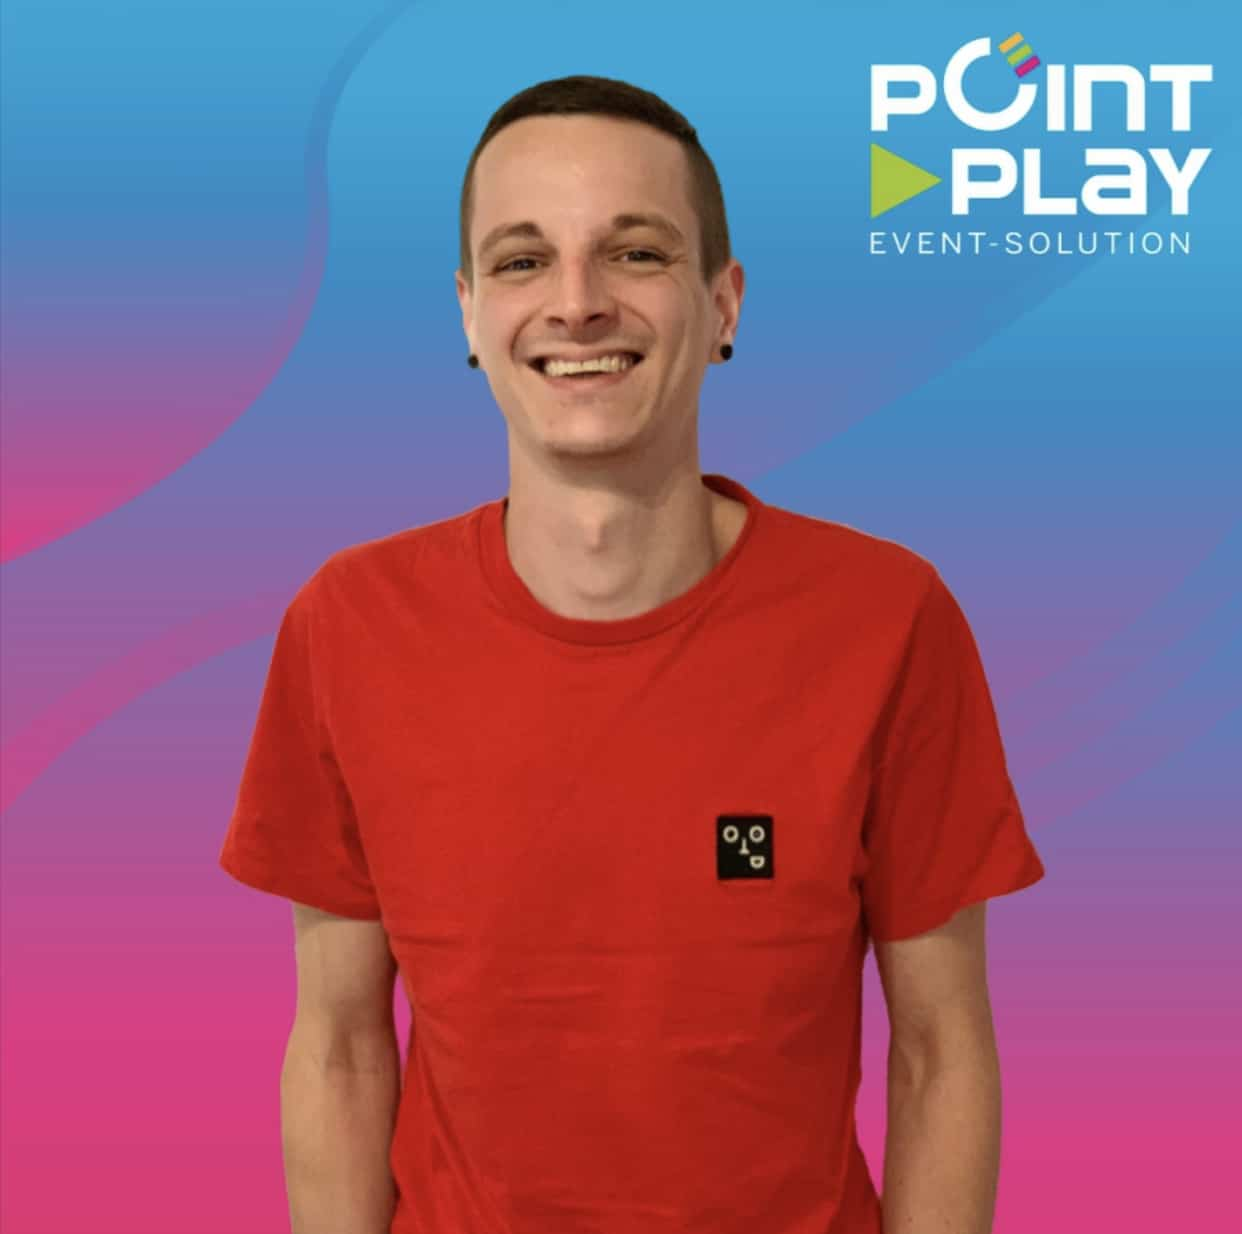 Point Play Event Solution – DJ Kevin K